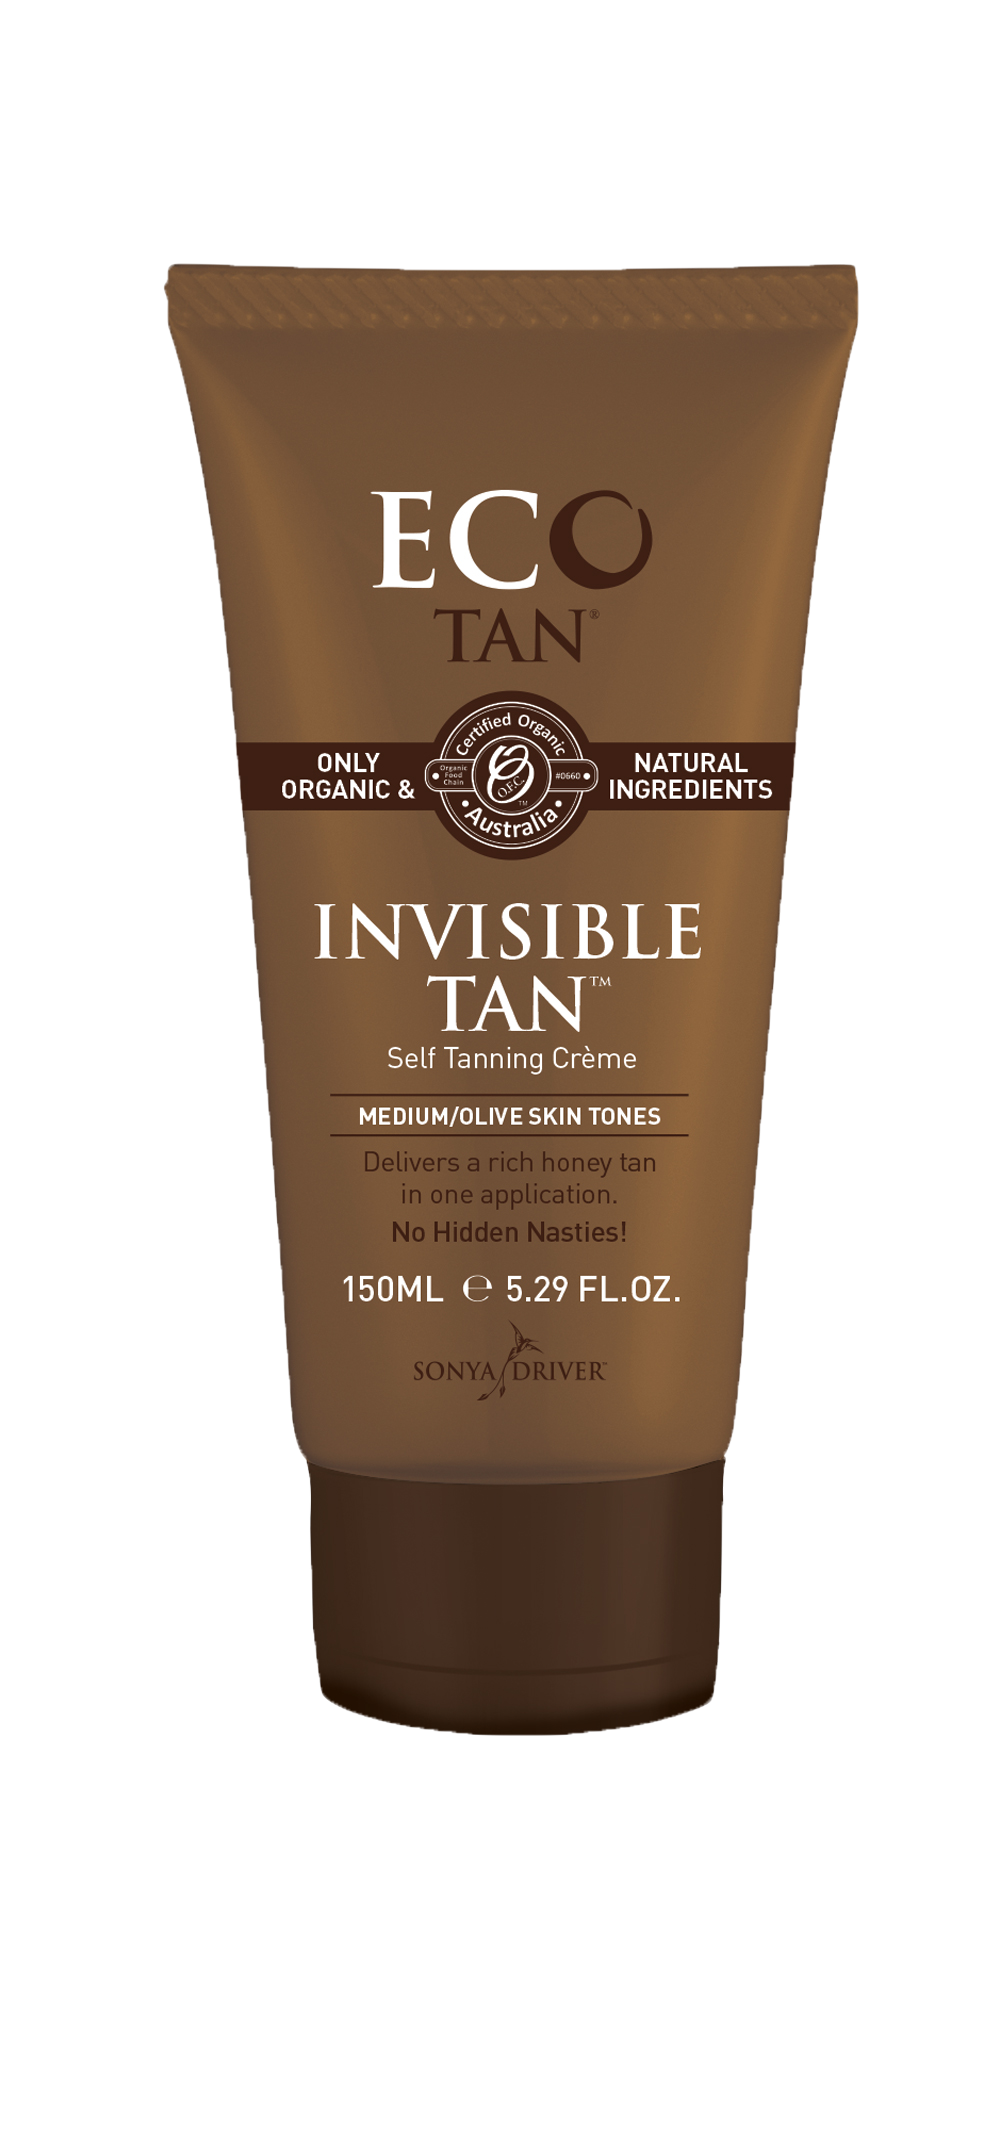 Eco Tan Invisible Tan (With images) Self tanning